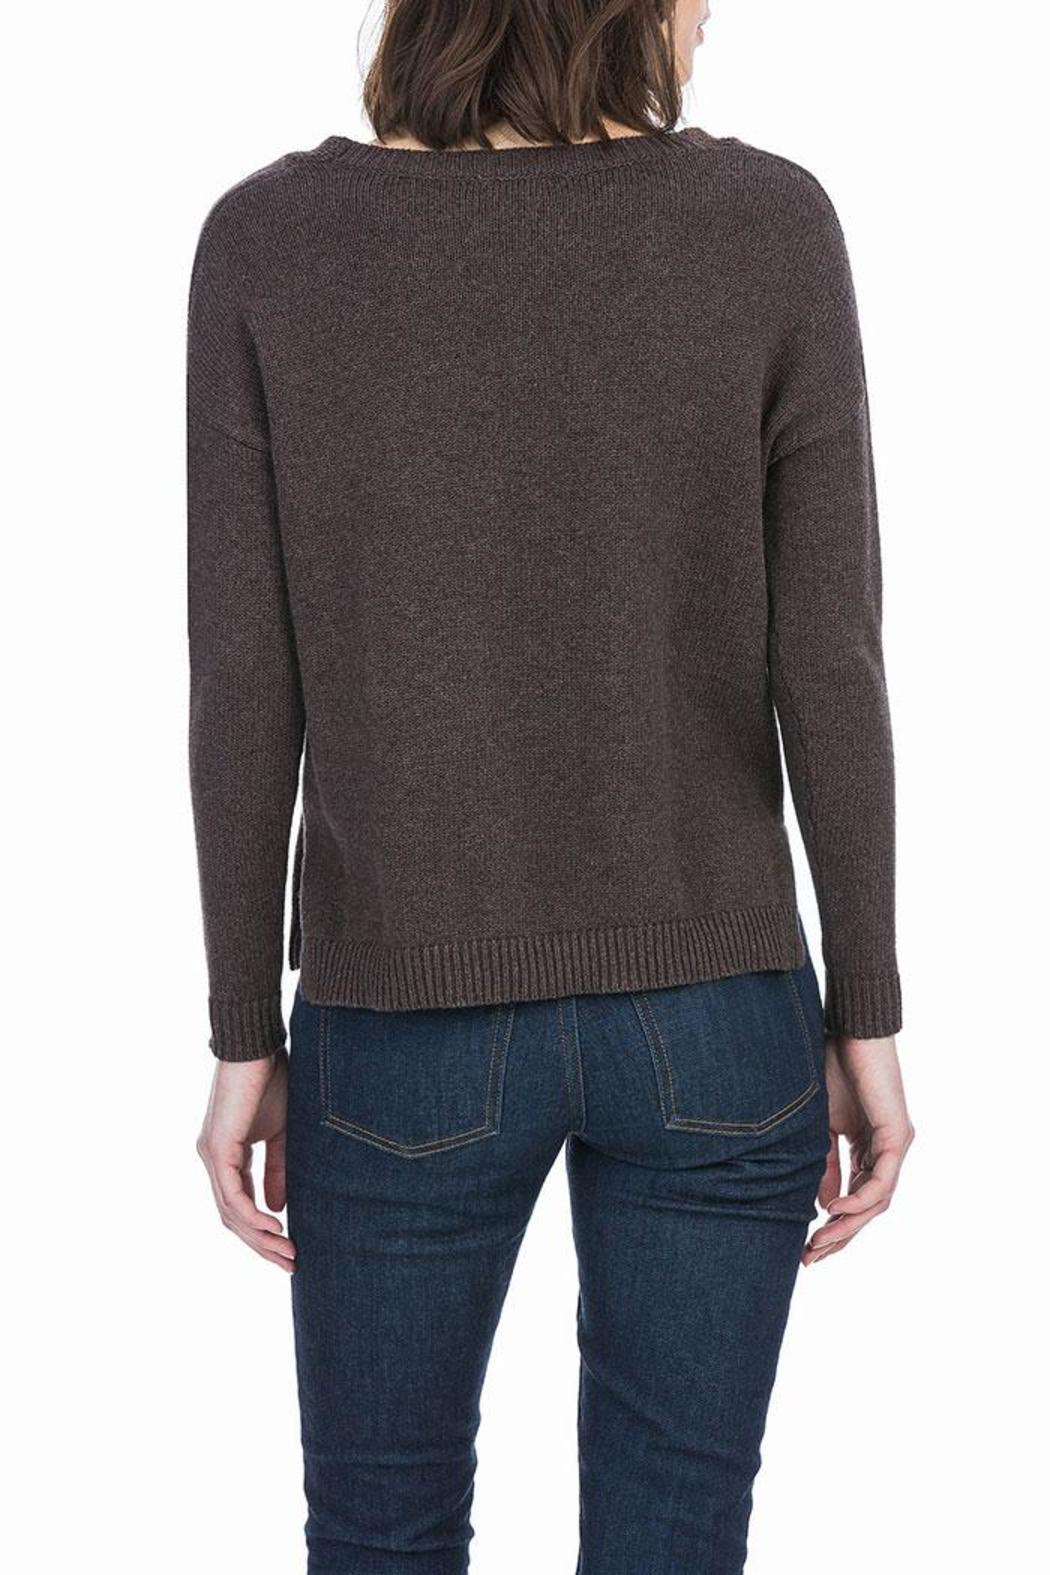 Lilla P Cotton Cashmere Sweater - Front Full Image